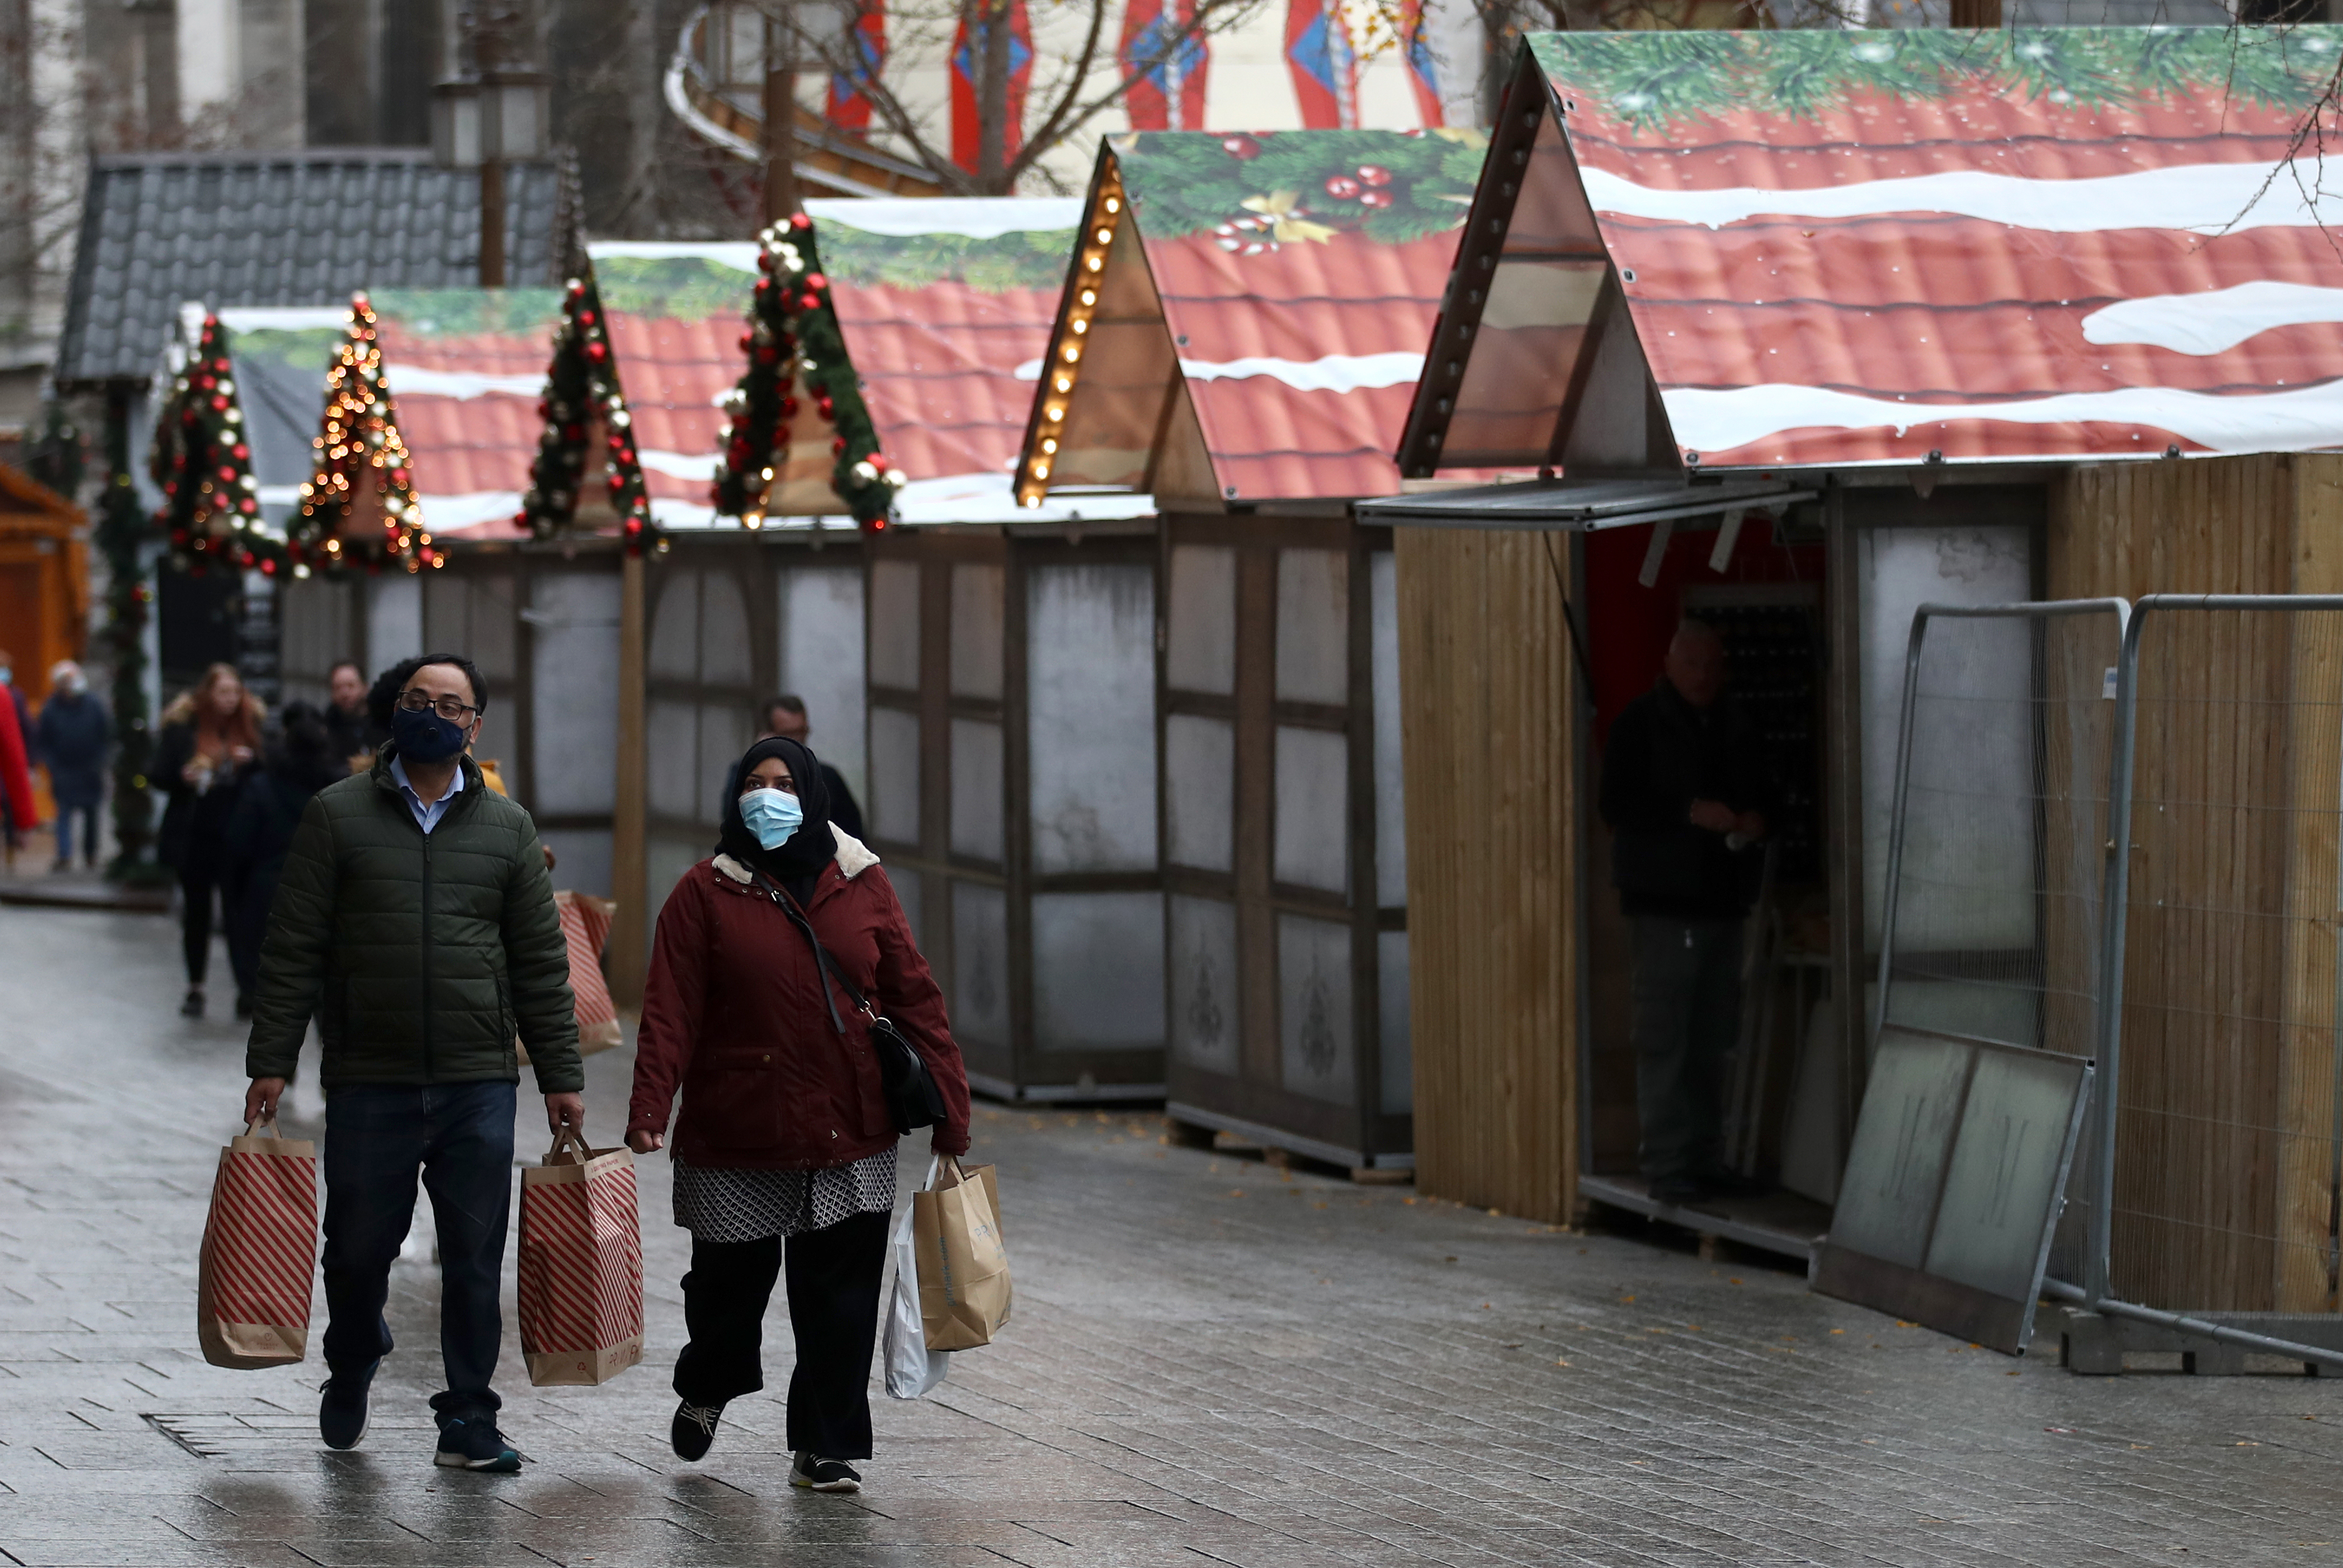 Shoppers walk past the Christmas market being erected in the market square in Nottingham city centre, as non-essential shops in England open their doors to customers for the first time after the second national lockdown ends and England has a strengthened tiered system of regional coronavirus restrictions.